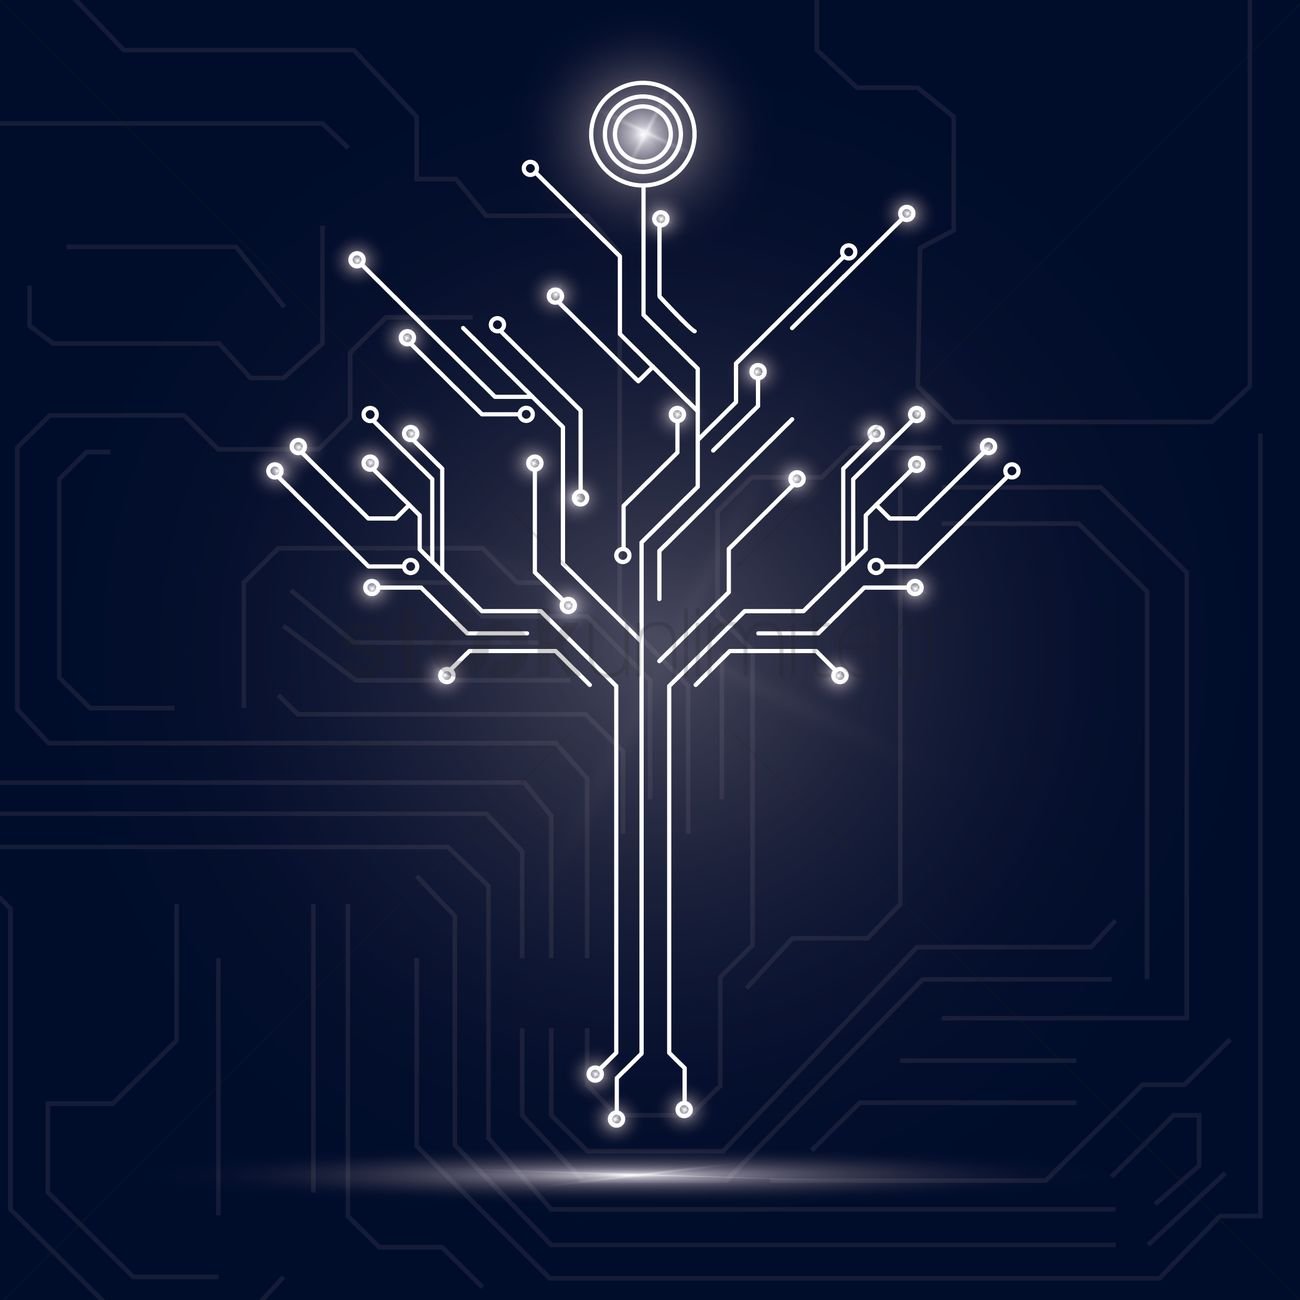 Tree design on circuit board background Vector Image - 1646948 ...